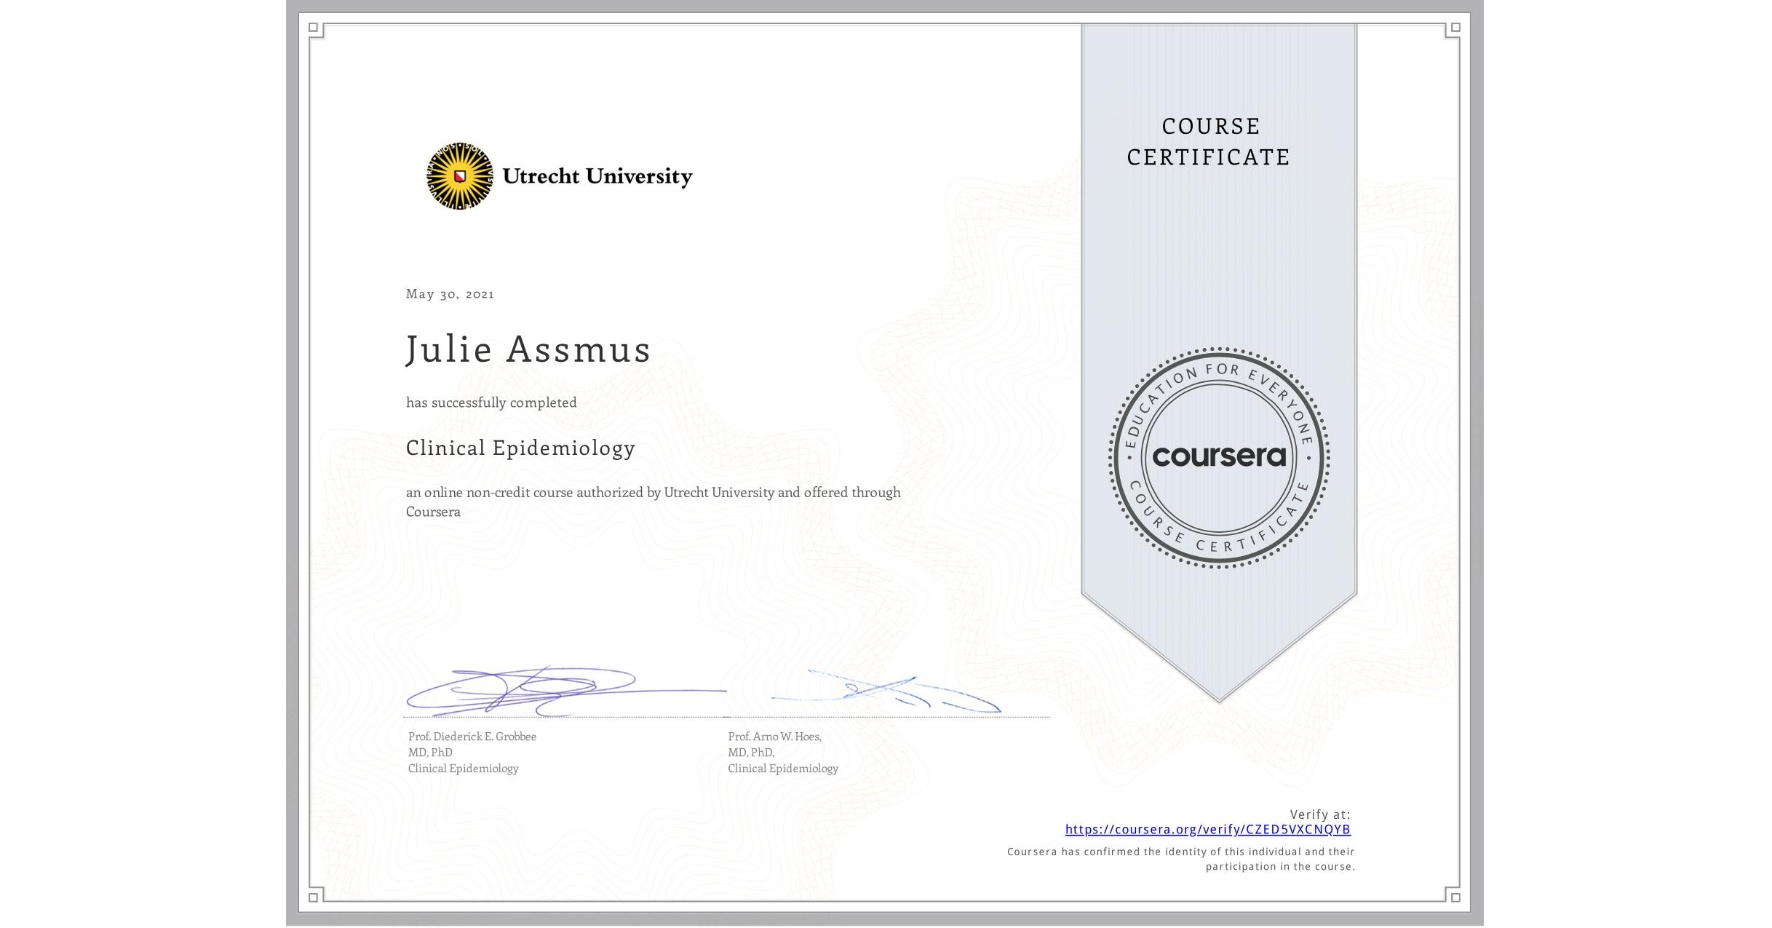 View certificate for Julie Assmus, Clinical Epidemiology, an online non-credit course authorized by Utrecht University and offered through Coursera